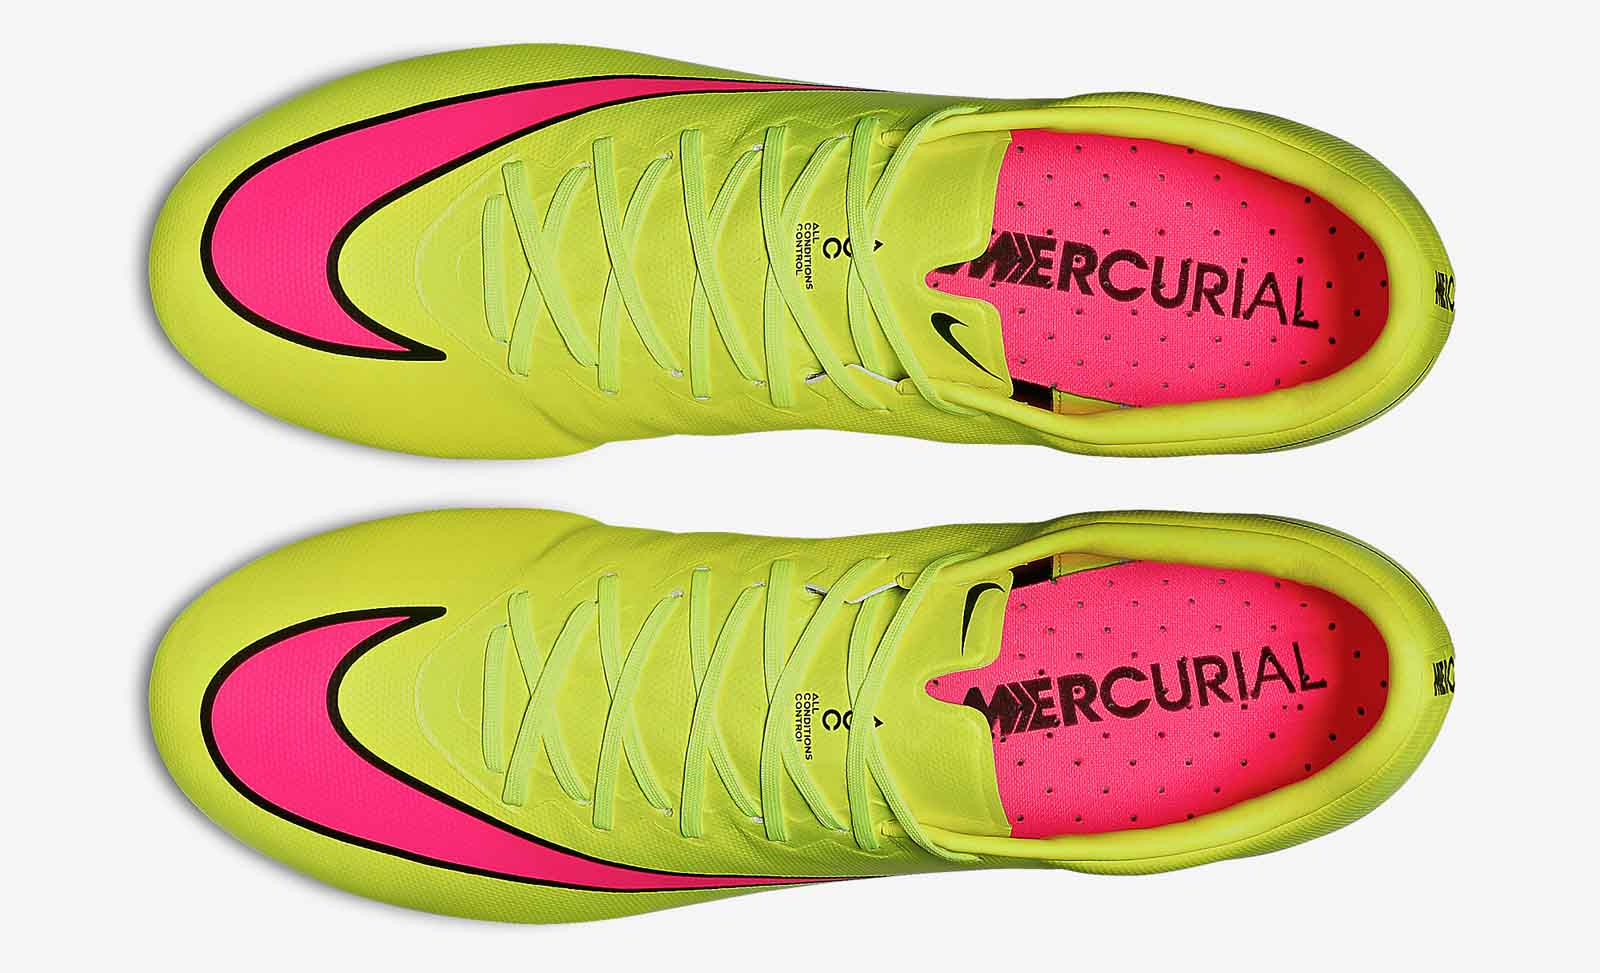 Boot design by nike - The Lightweight Teijin Upper Of The New Nike Mercurial Vapor 10 Boot Is Volt While The Nike Swoosh Is Pink With A Black Border Creating A Bold Design